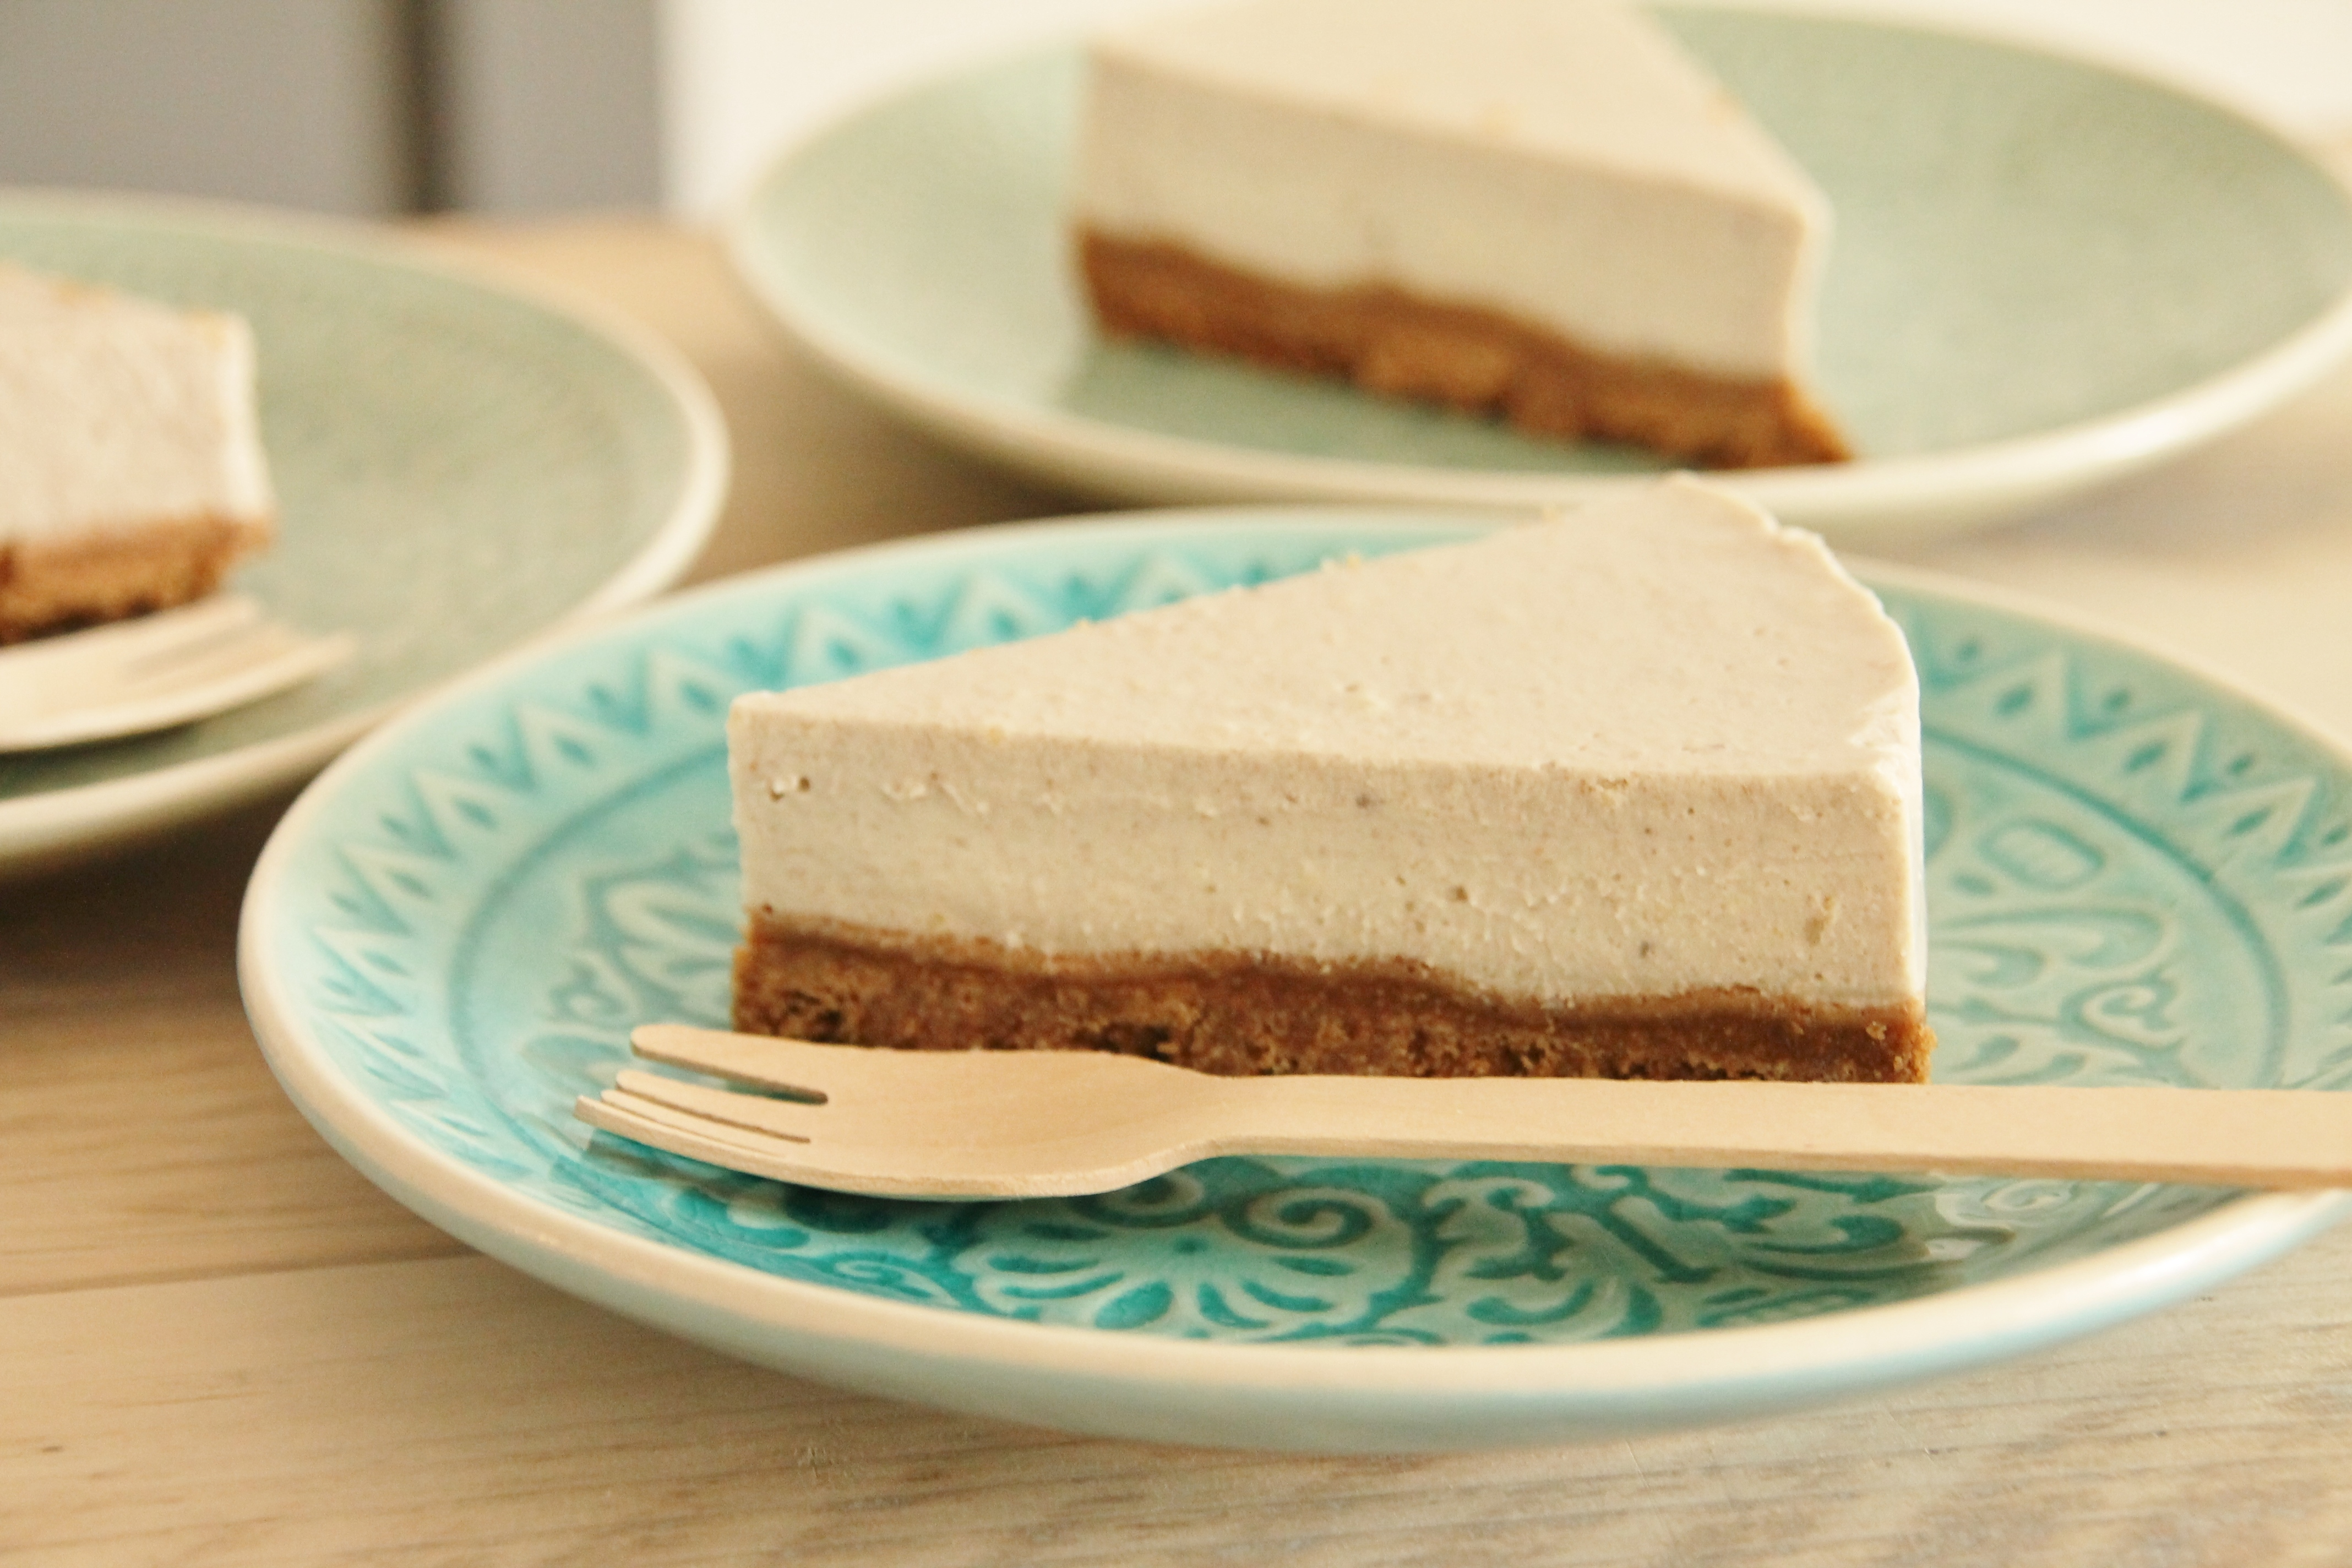 Speculaas (no) cheesecake